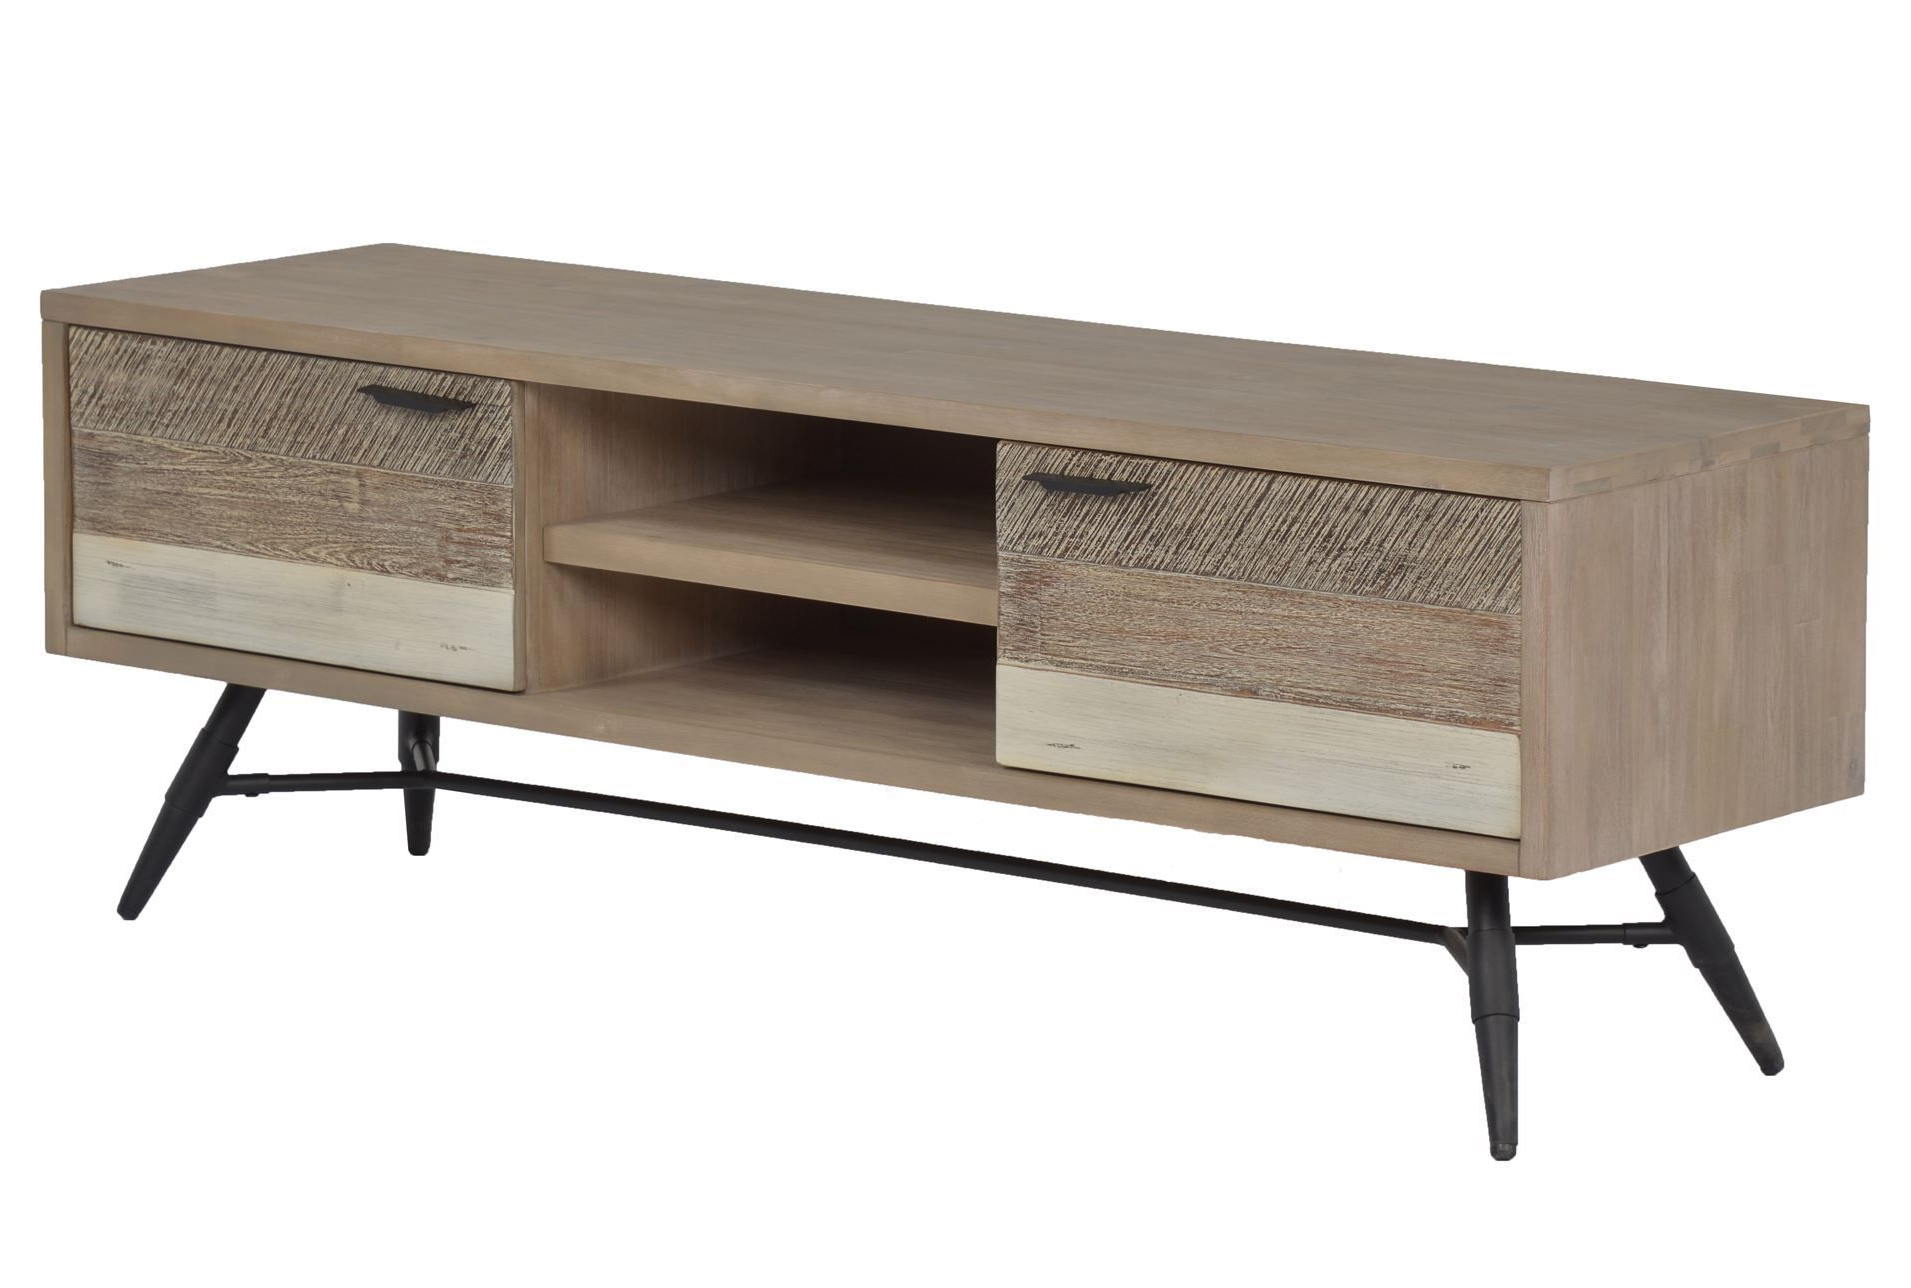 Kai 63 Inch Tv Console | Living Room | Pinterest | Console, Room And Throughout Kai 63 Inch Tv Stands (View 2 of 20)